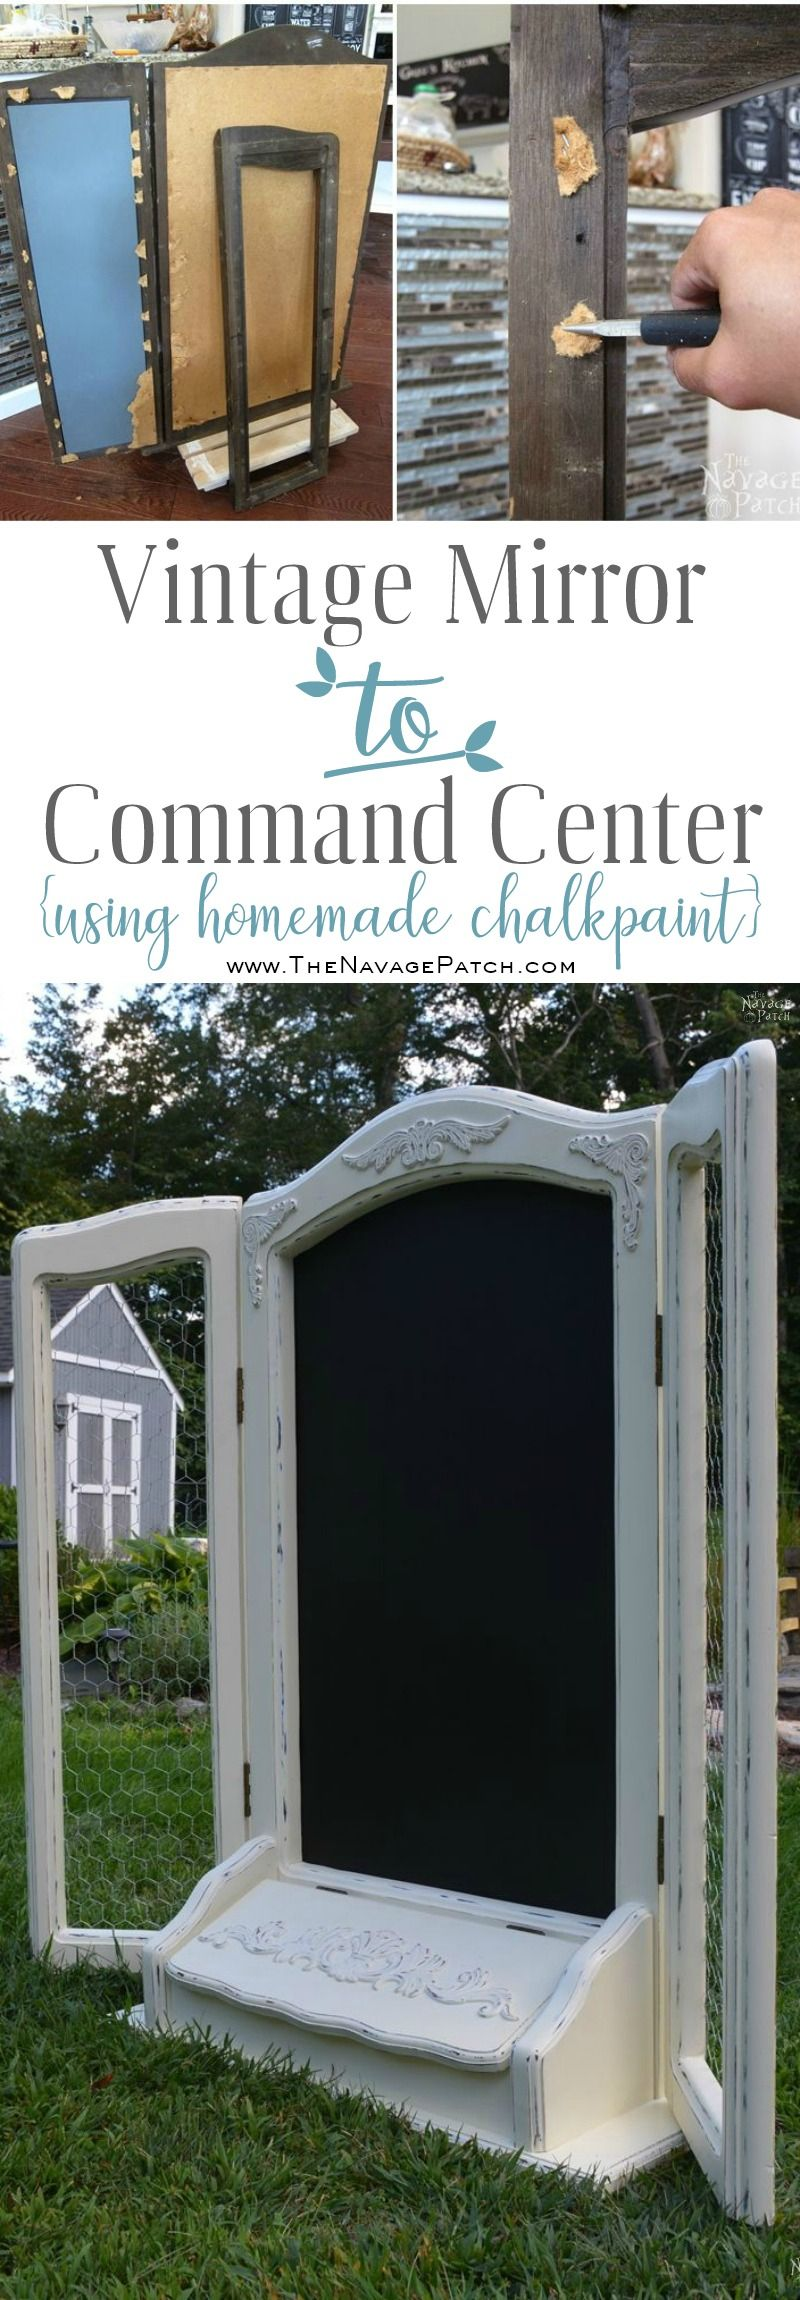 Vintage Mirror to Command Center   DIY furniture makeover  Upcycled furniture   DIY command center   Repurposed tri-fold mirror   Homemade chalk paint   Painted furniture   Farmhouse style furniture   Annie Sloan Old White color   Painted and distressed furniture makeover   Ornate furniture   Transformed furniture   Before & After   TheNavagePatch.com